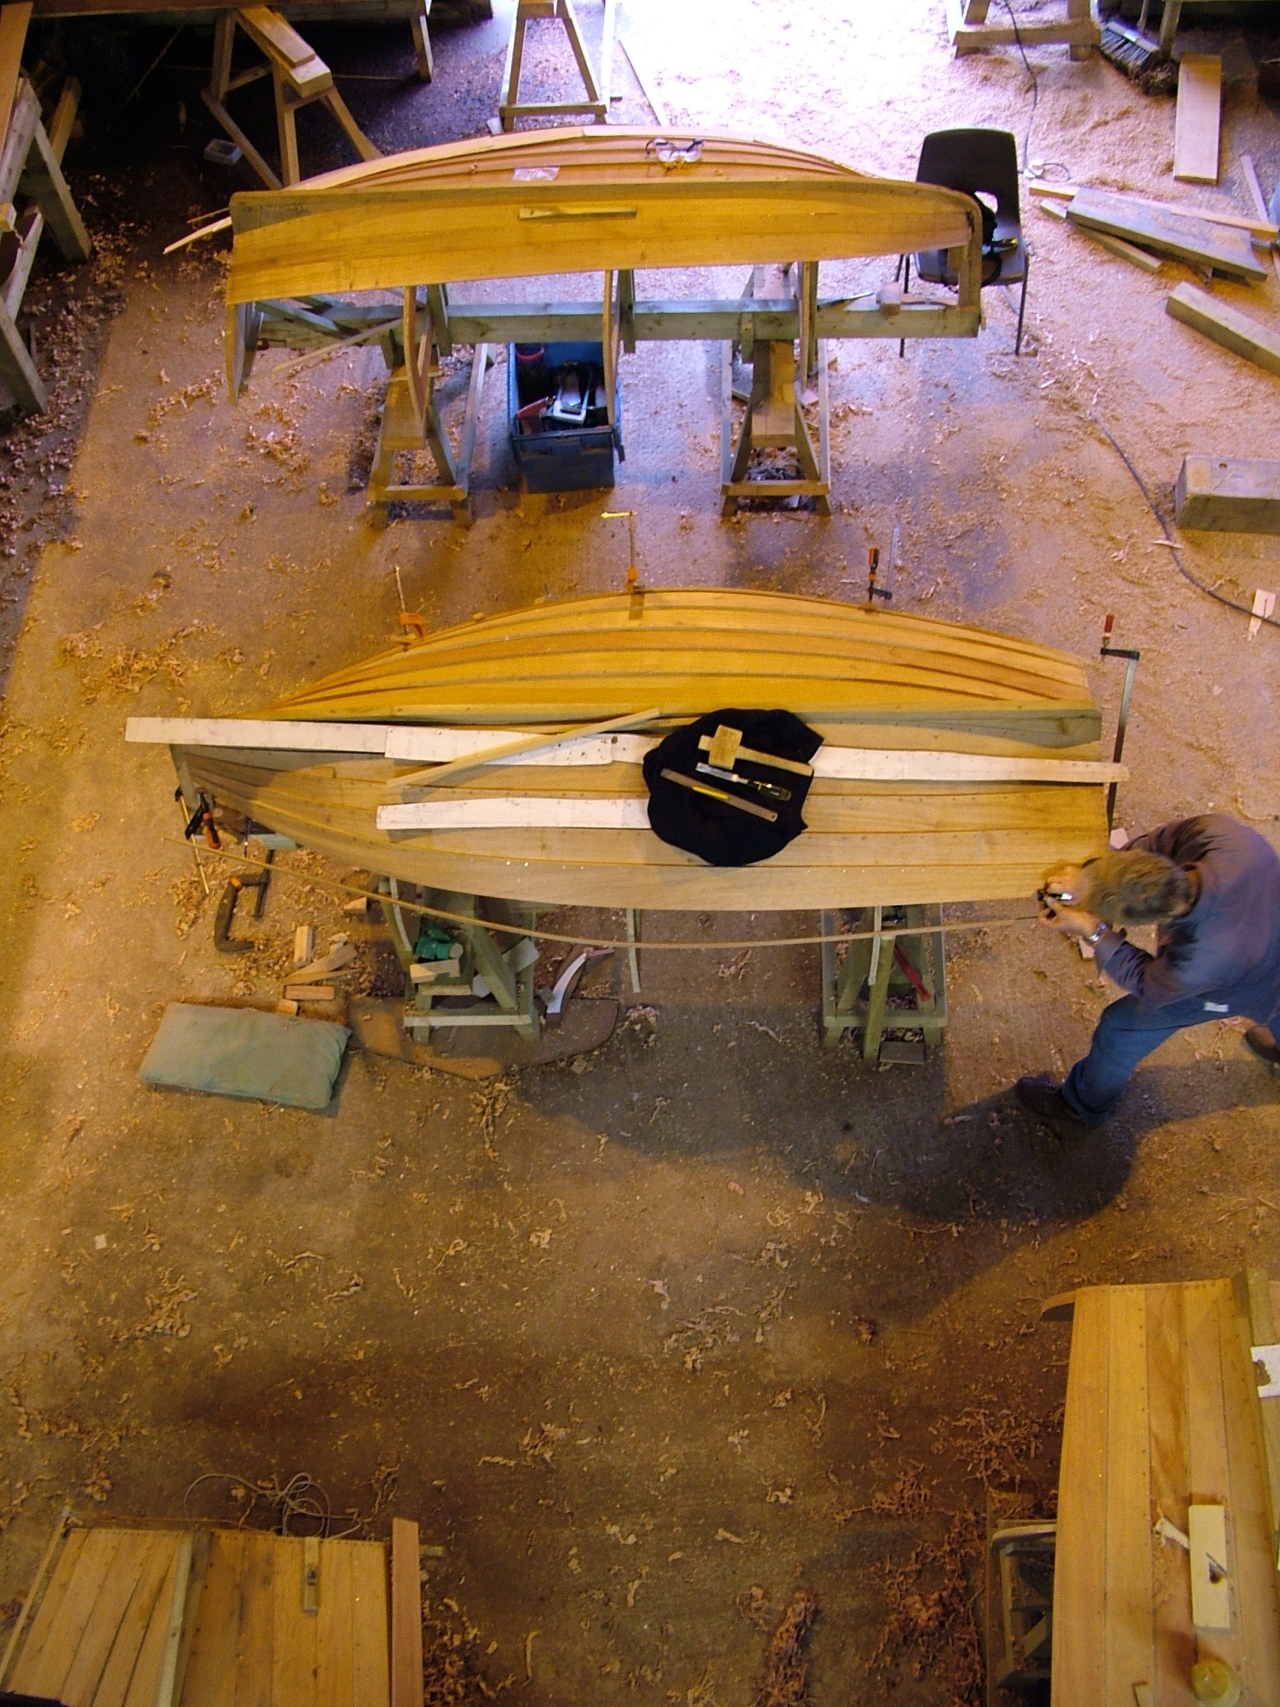 Build dinghies and learn boatbuilding with Stirling & Son | intheboatshed.net